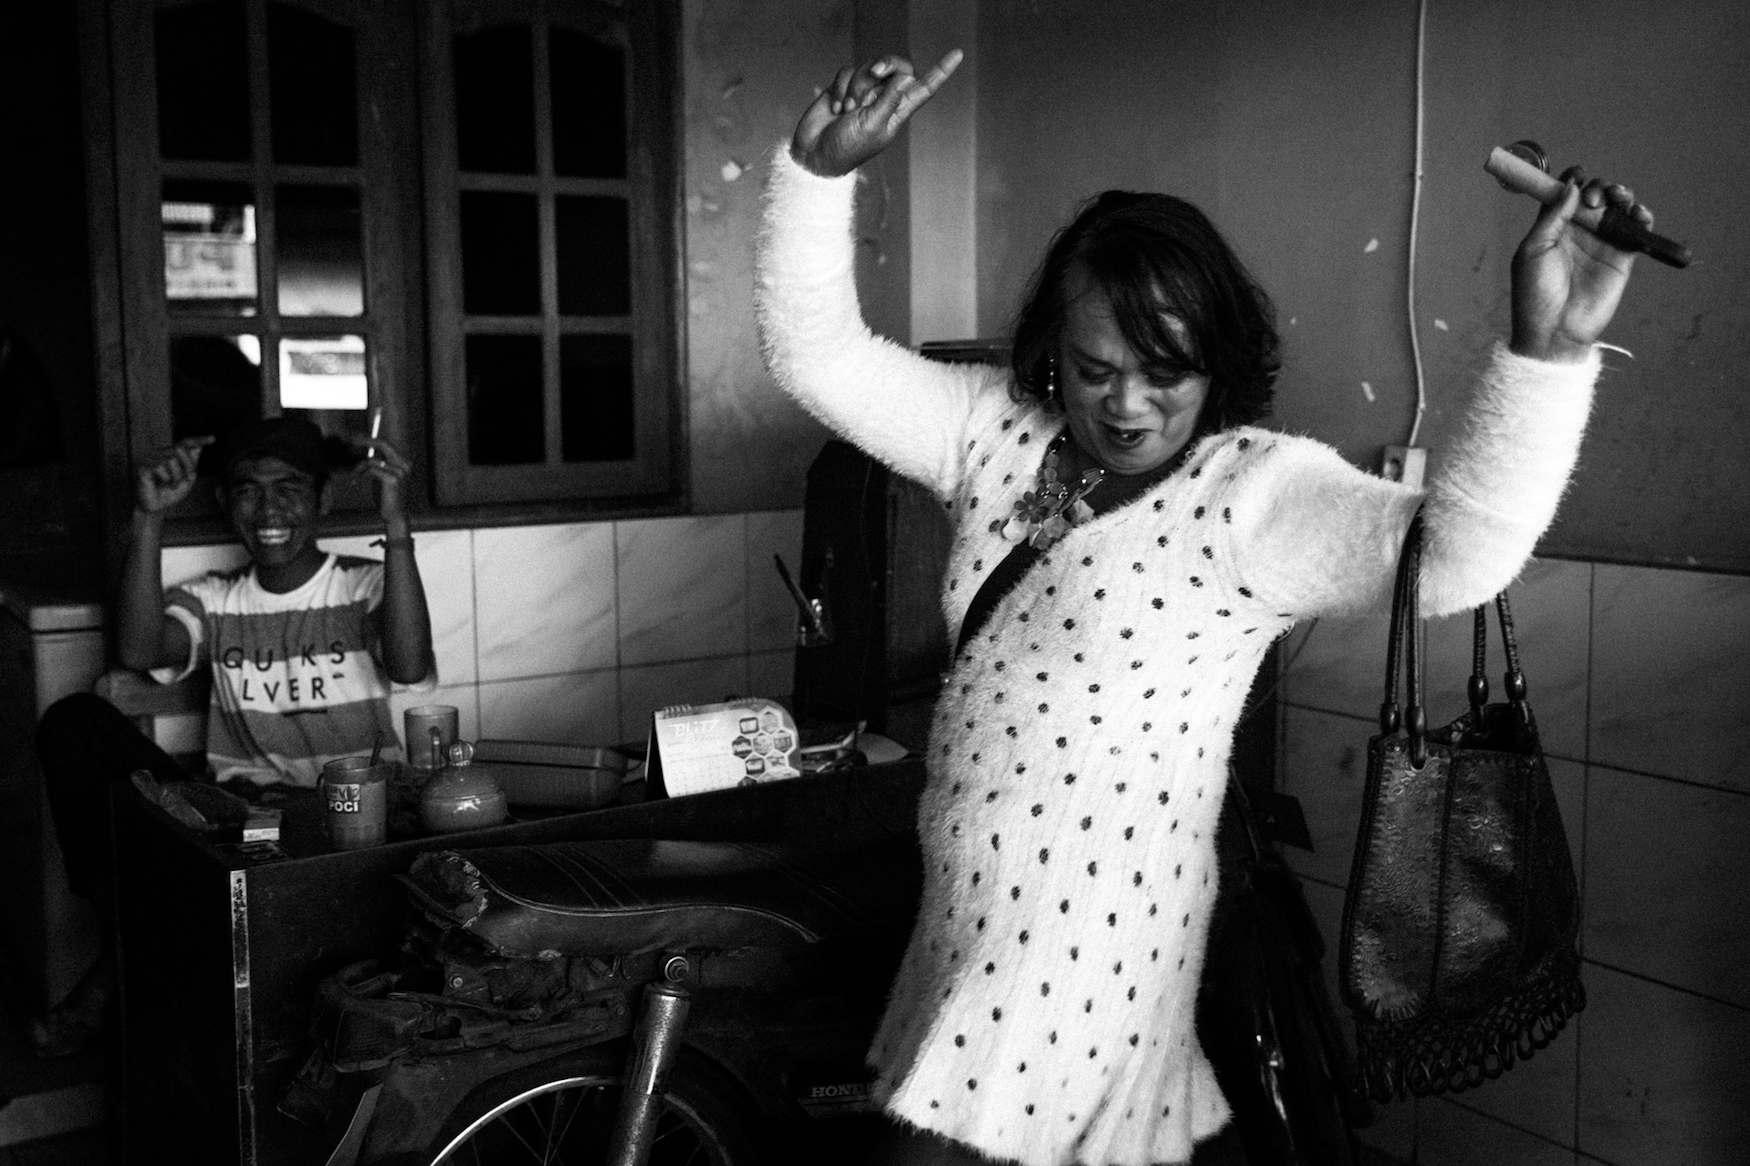 Nur Ayu no longer works as a prostitute, but still sings and dances in the street for a few rupees.